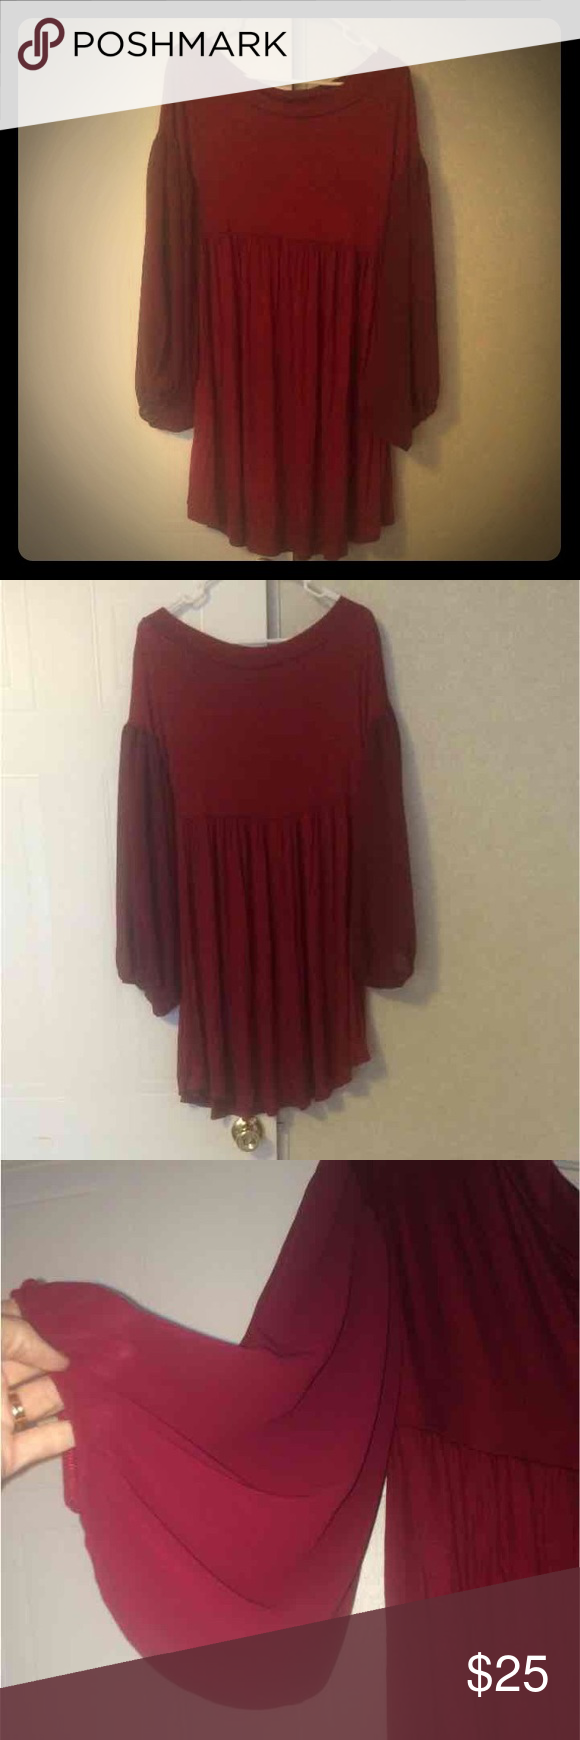 Crimson dress NWOT I bought this dress for my daughter and it didn't fit her. It doesn't have the tags but it was only tried on and never worn. It is a women's small. Has sheer sleeves. Dresses Midi